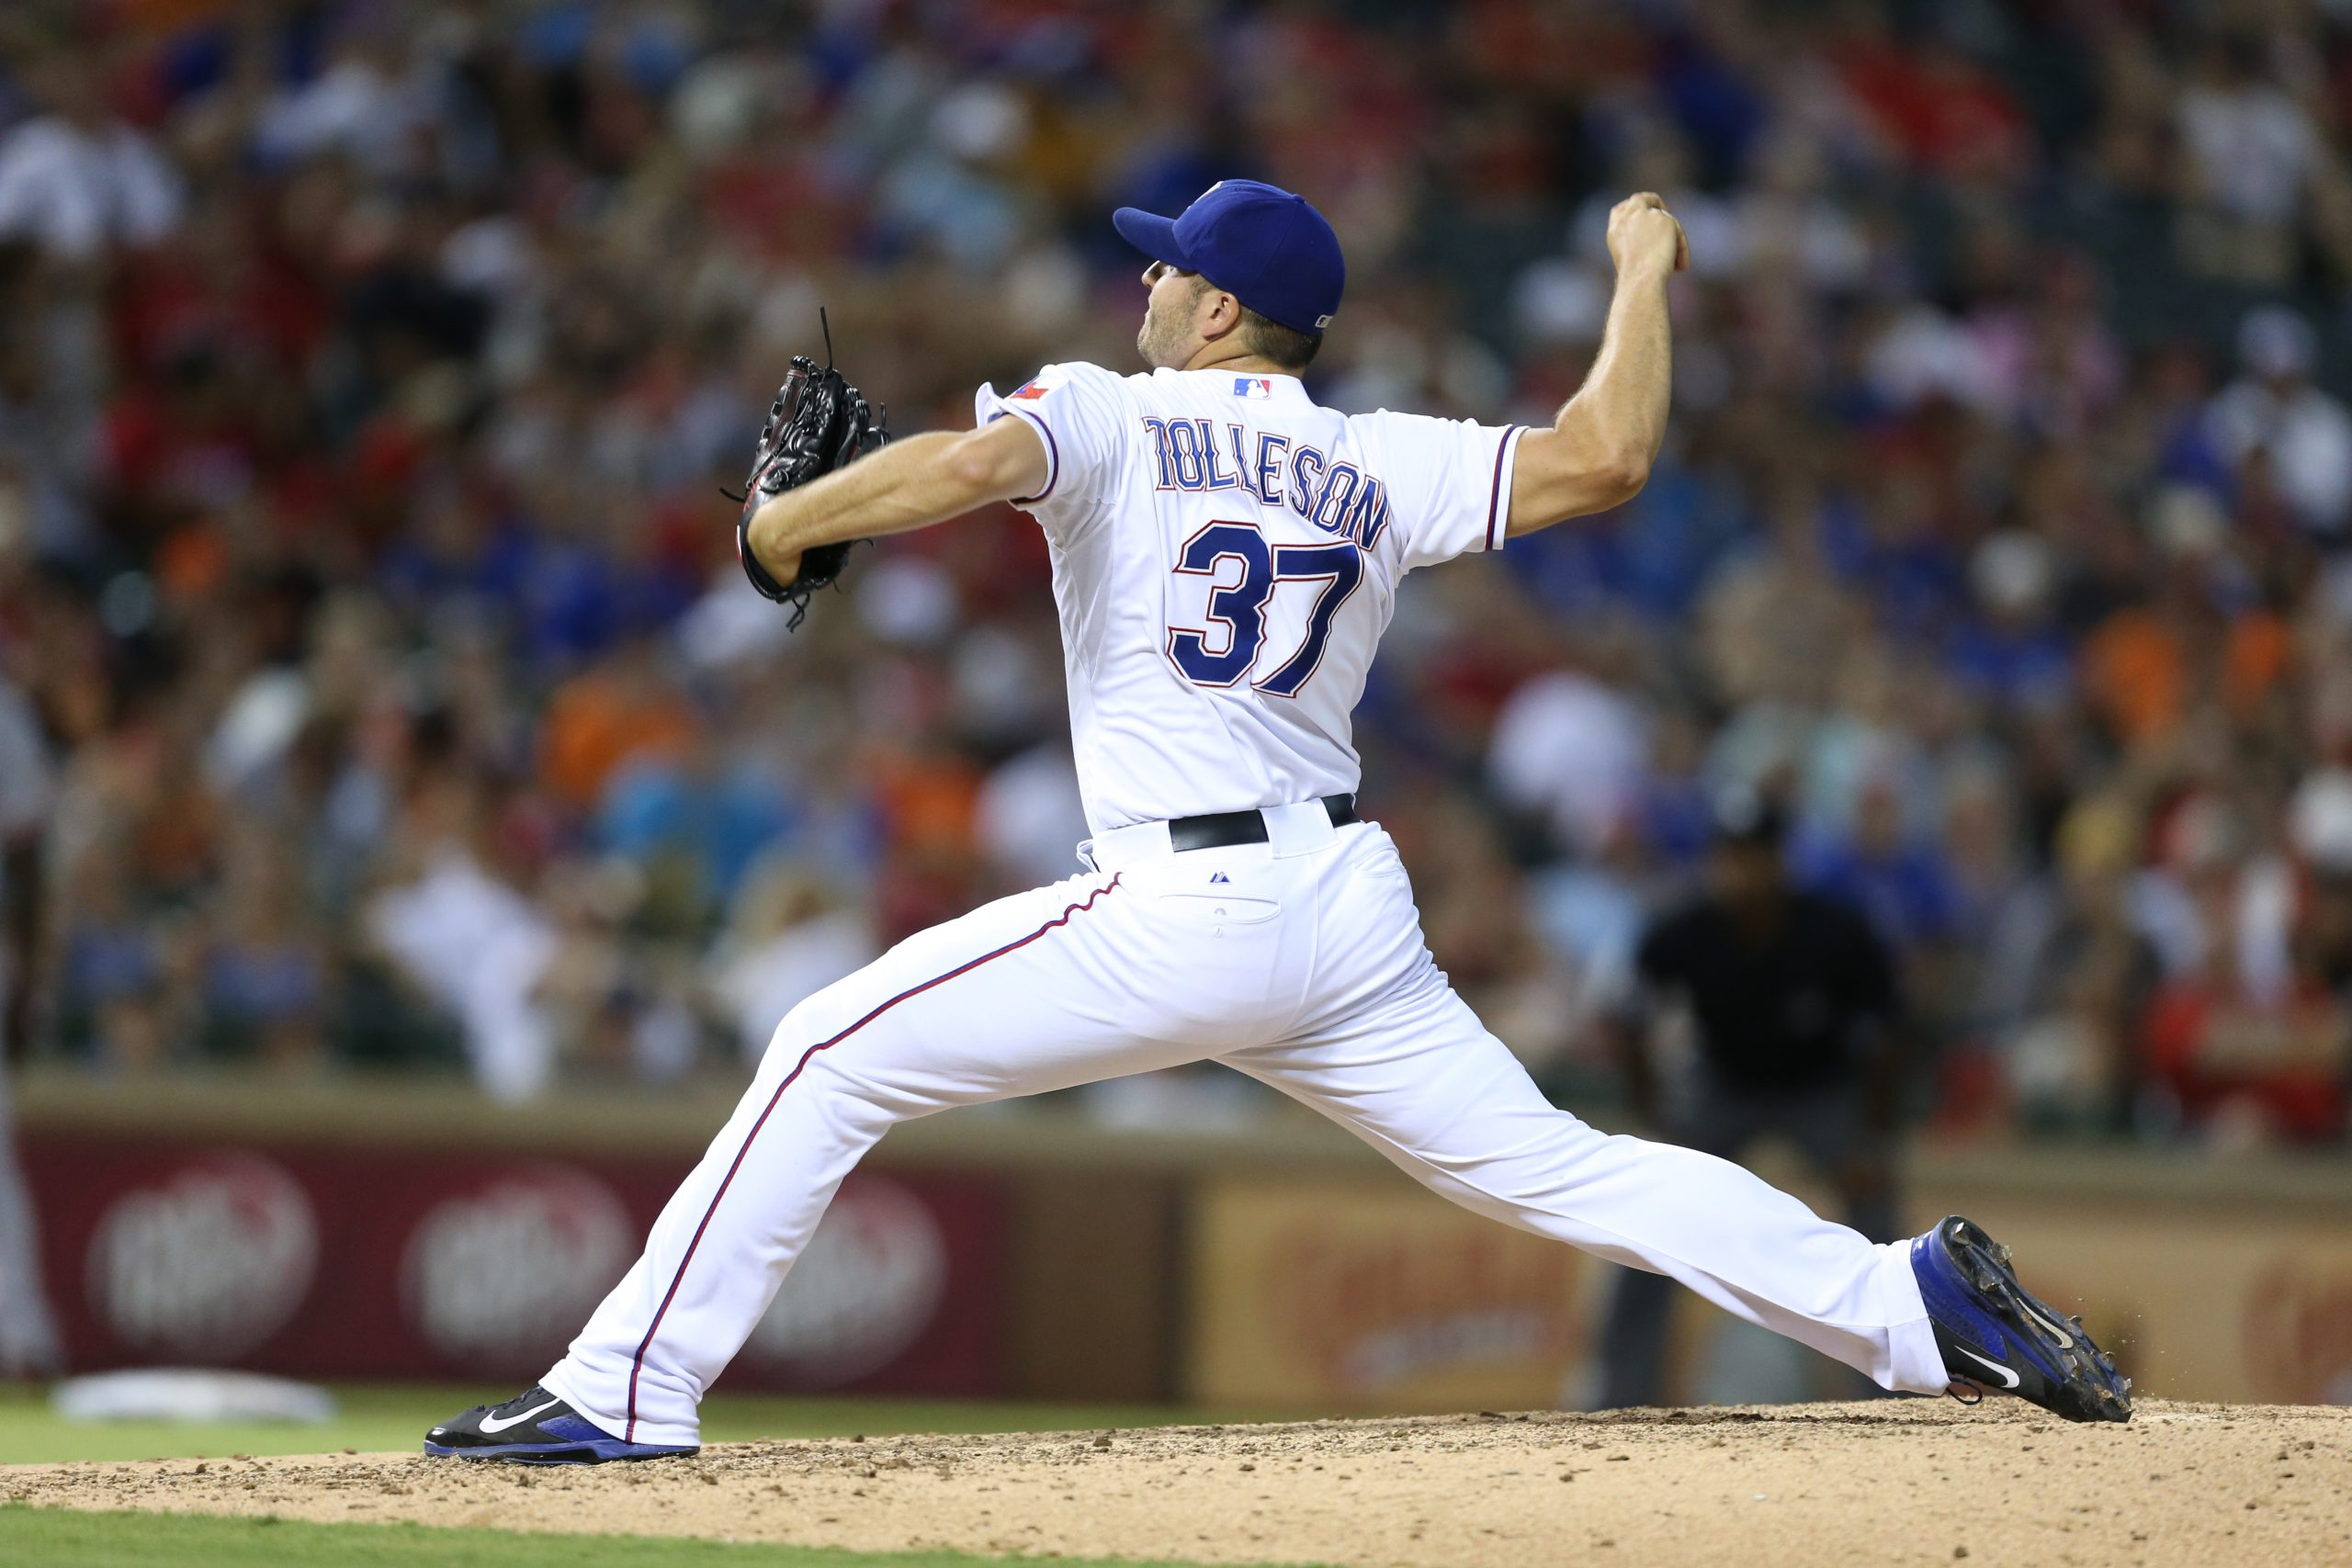 Shawn Tolleson throwing a baseball